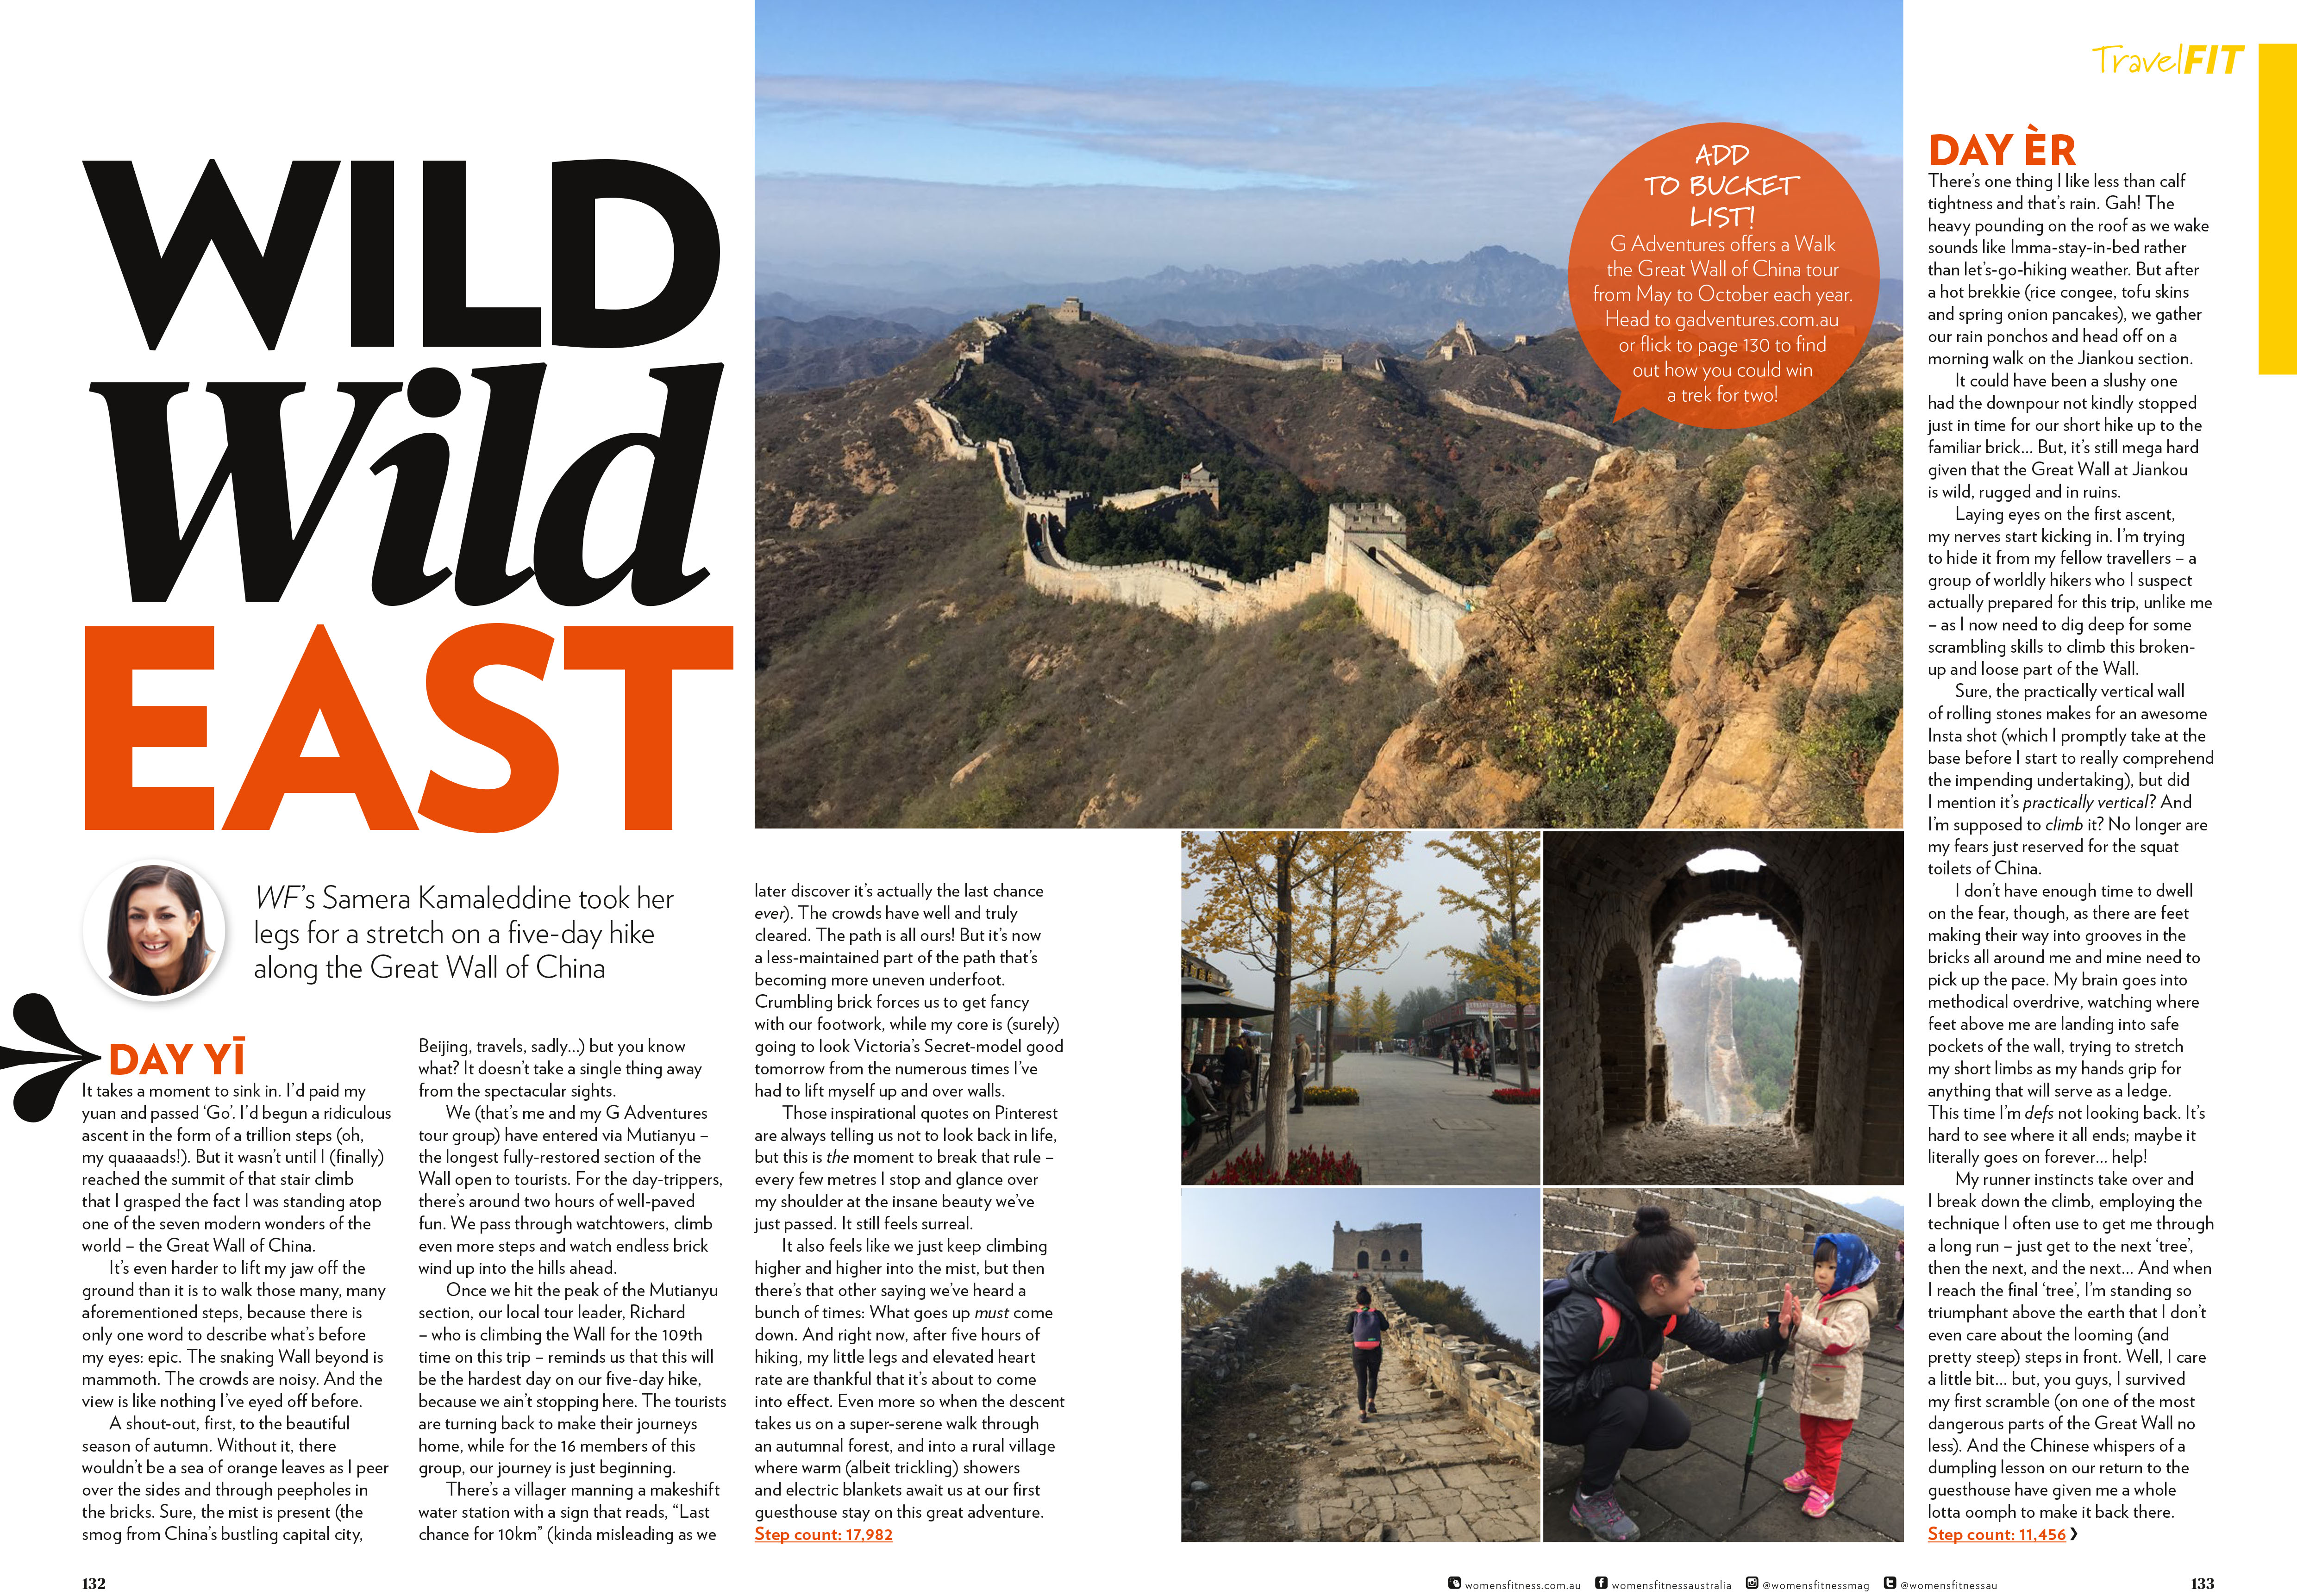 Travel: Great Wall of China